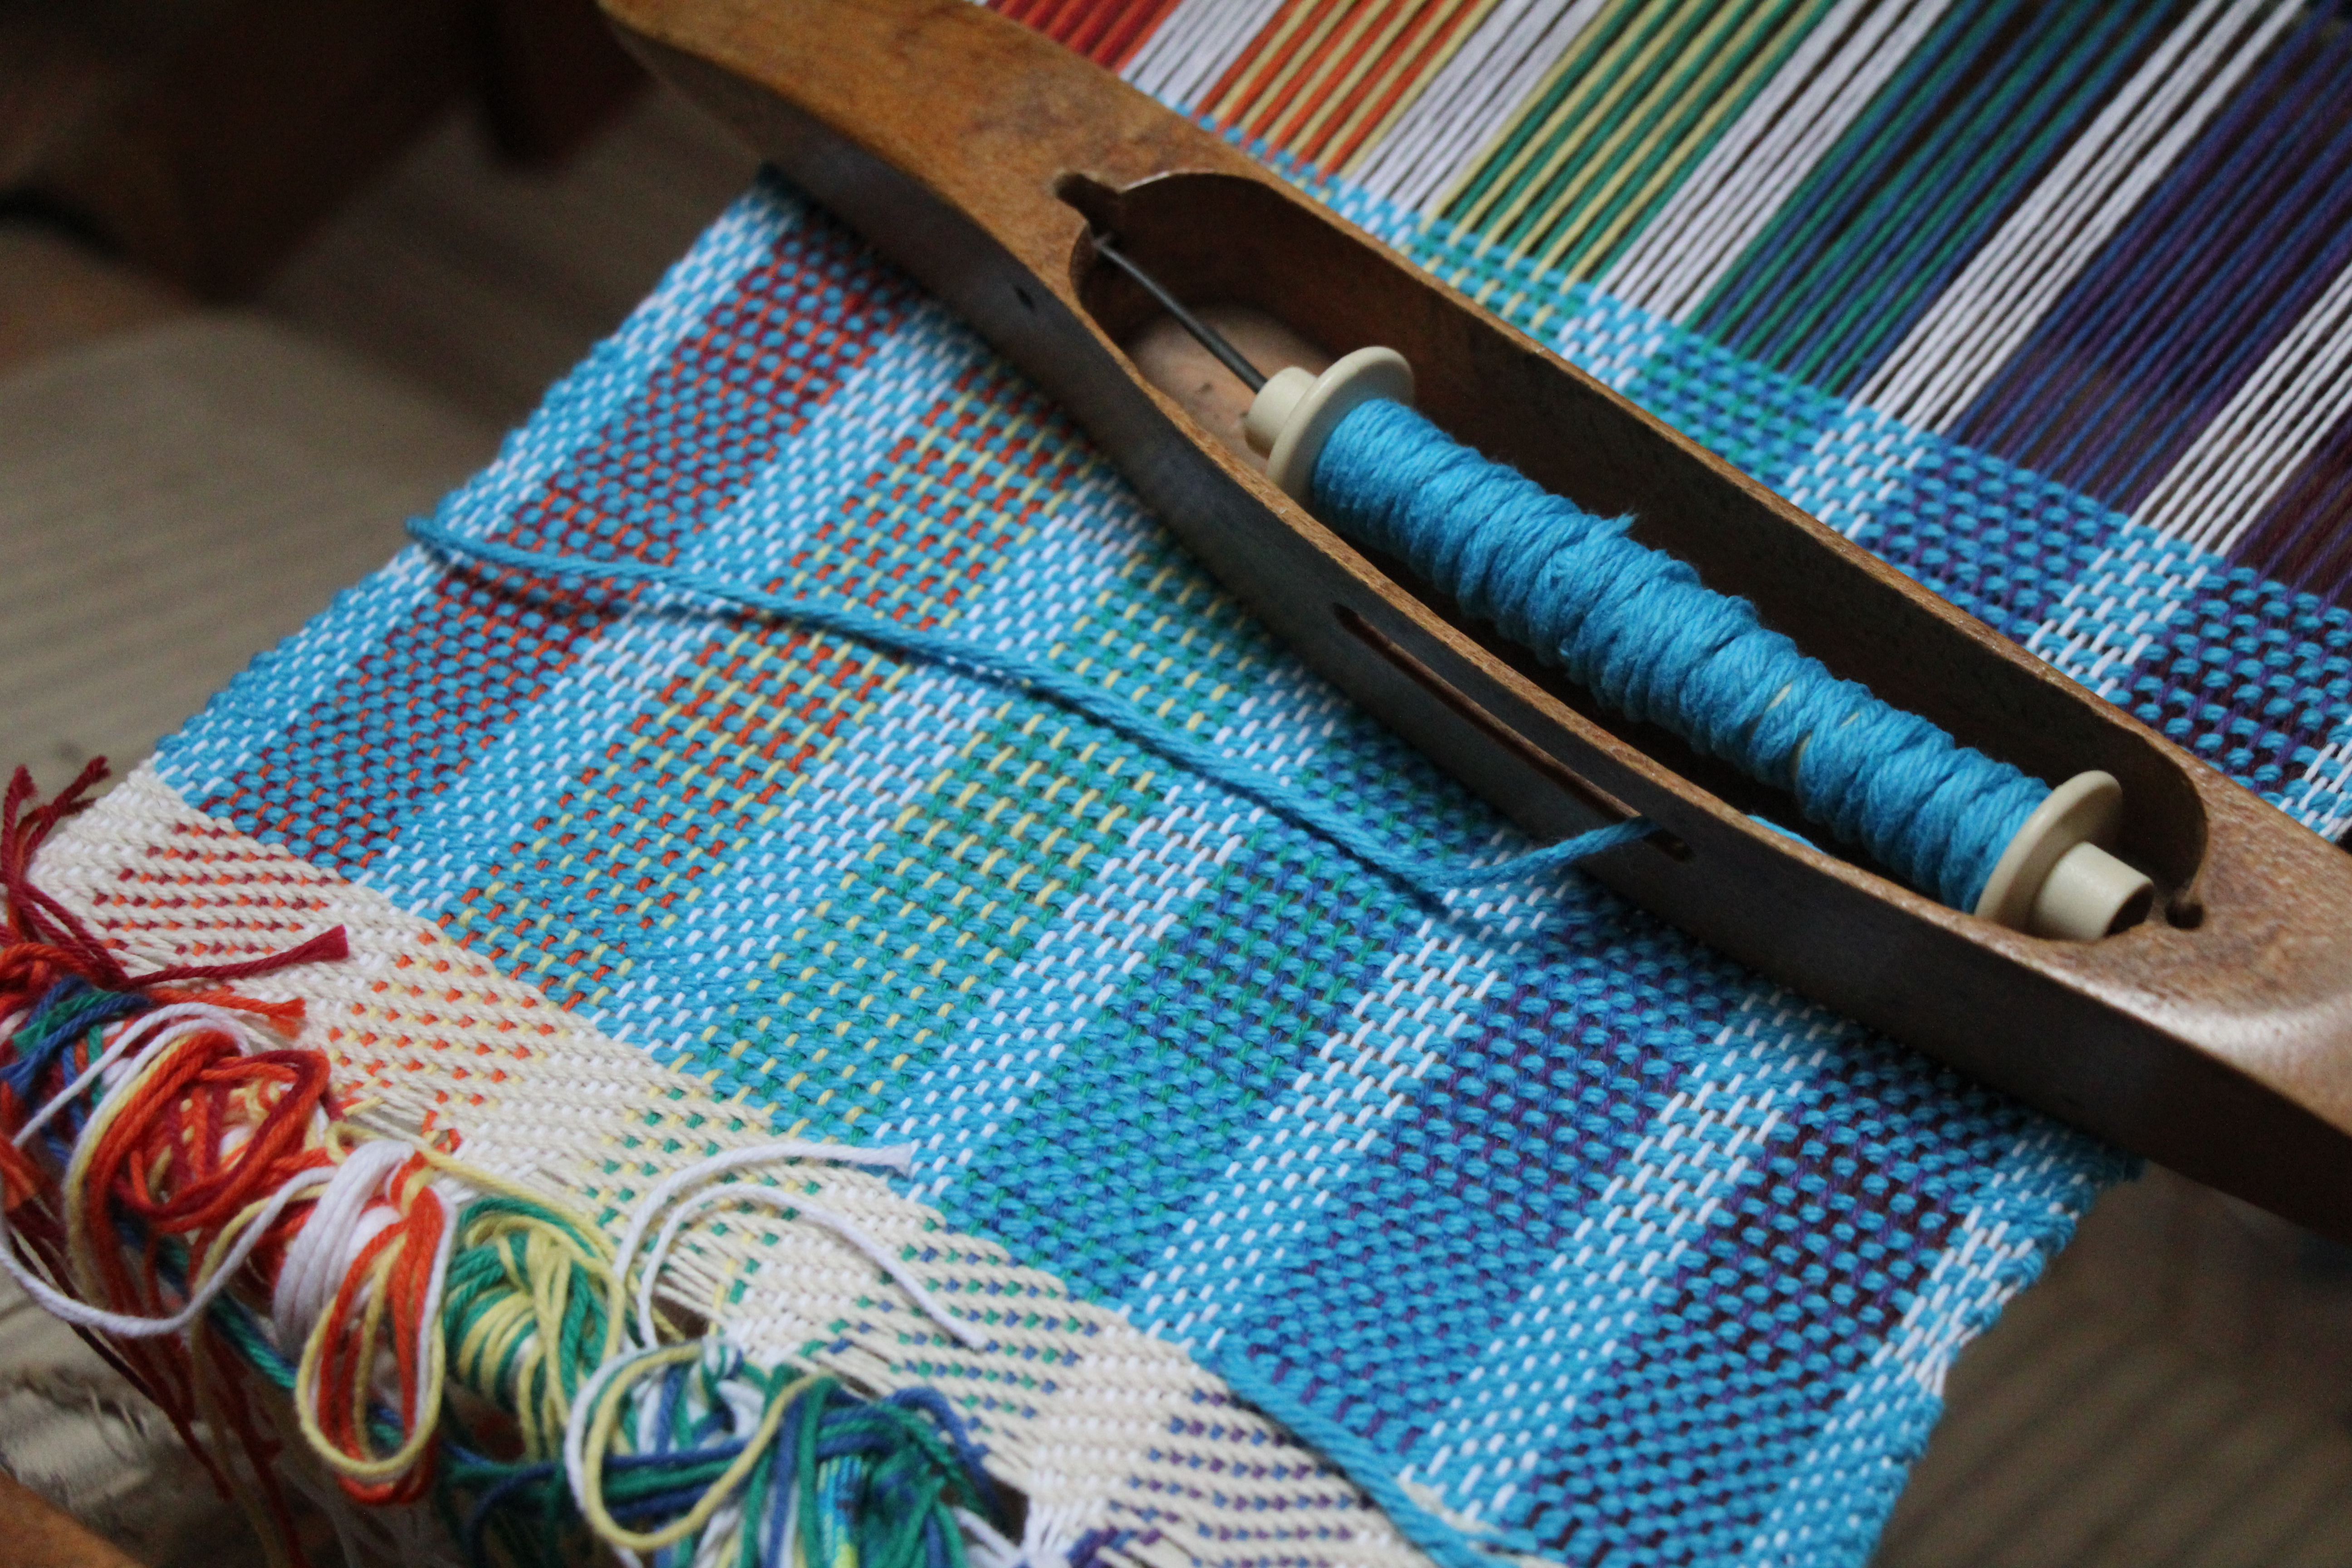 rockbrook weaving project for kids